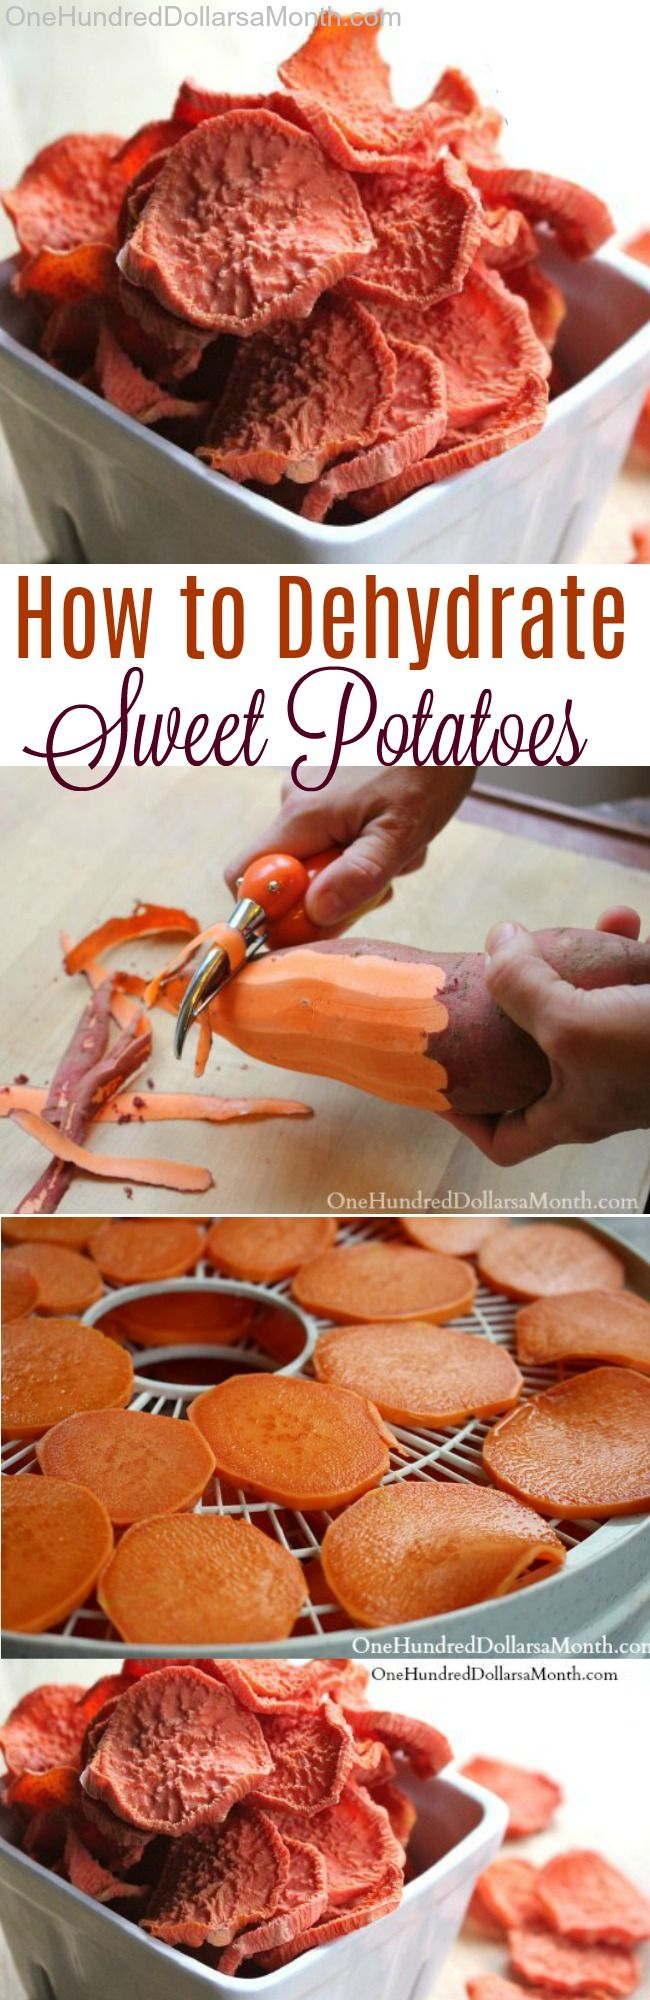 423 best dehydrator recipes images on pinterest dog recipes dog how to dehydrate sweet potatoes dehydrated food recipescanning forumfinder Images